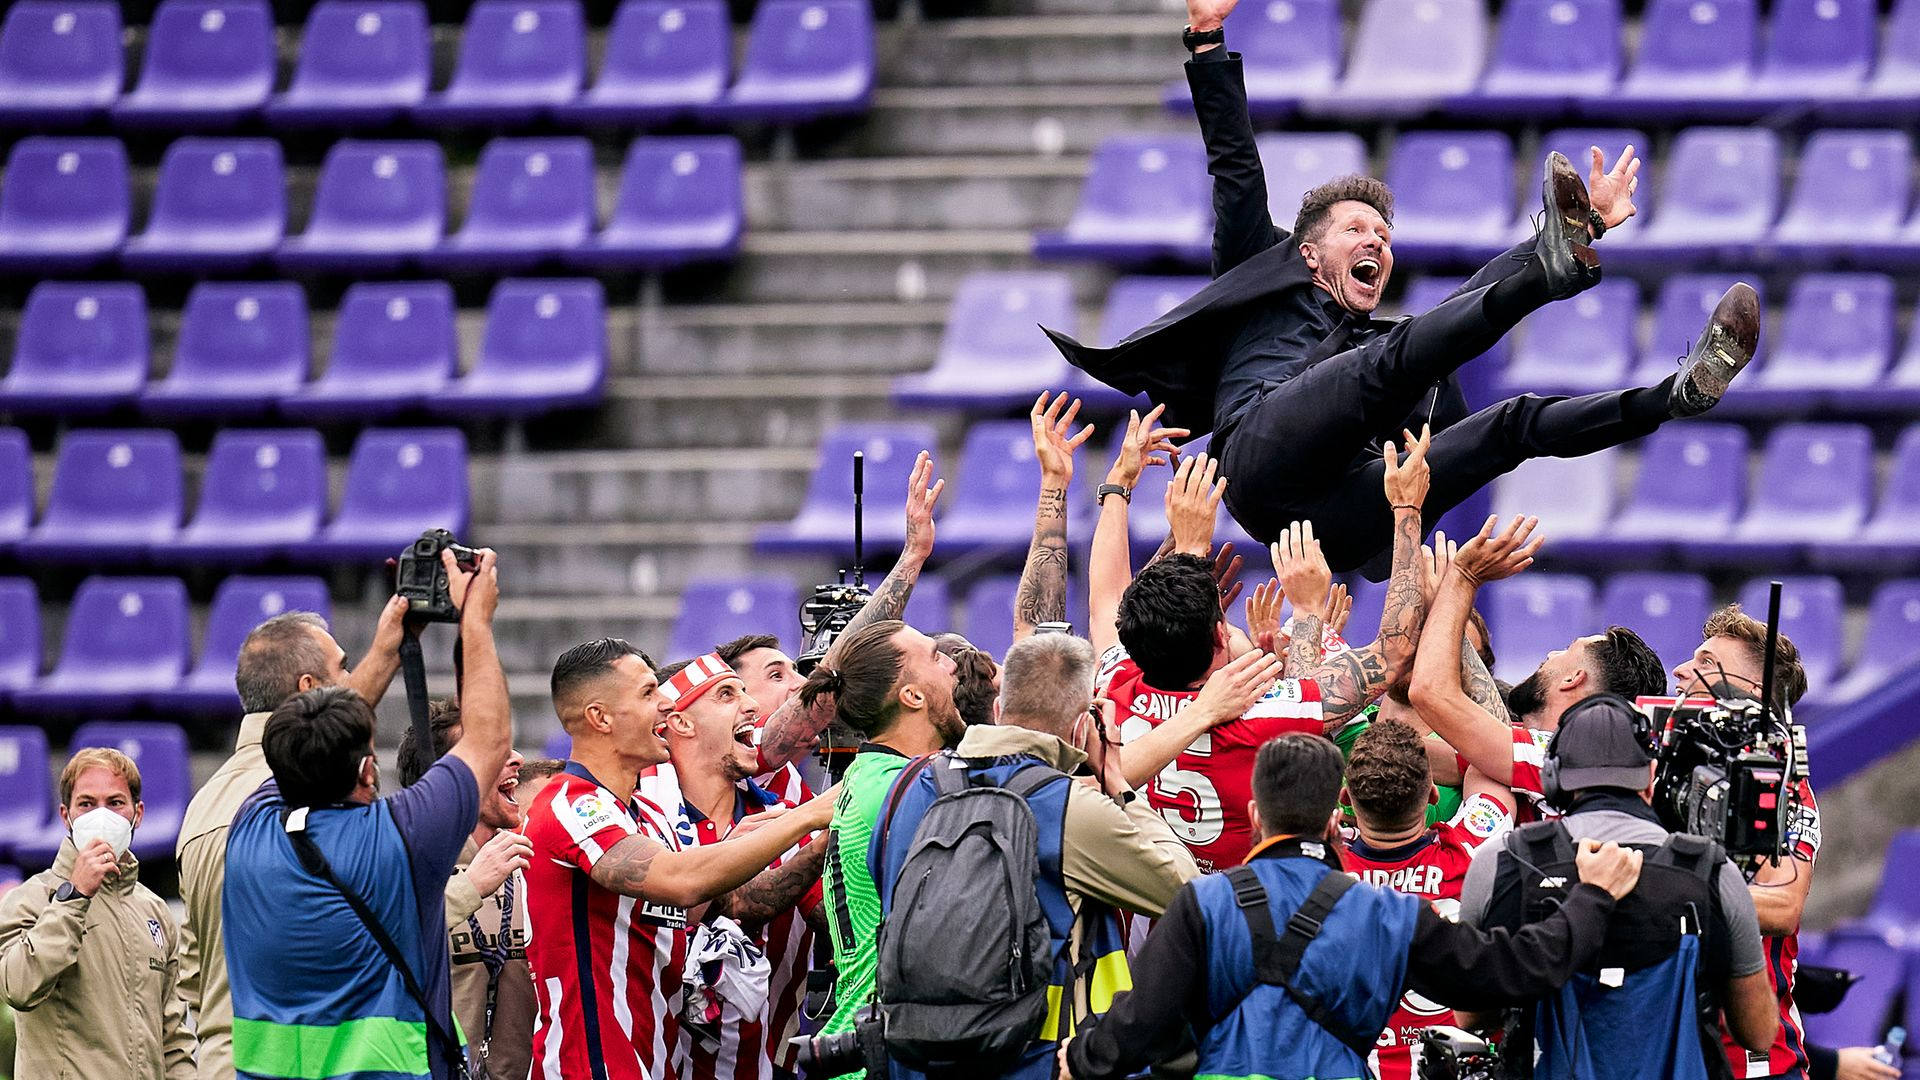 Atletico Madrid coach Diego Simeone is thrown by the air after winning the La Liga title - Credit: Photo by Pedro Salado/Quality Sport Images/Getty Images